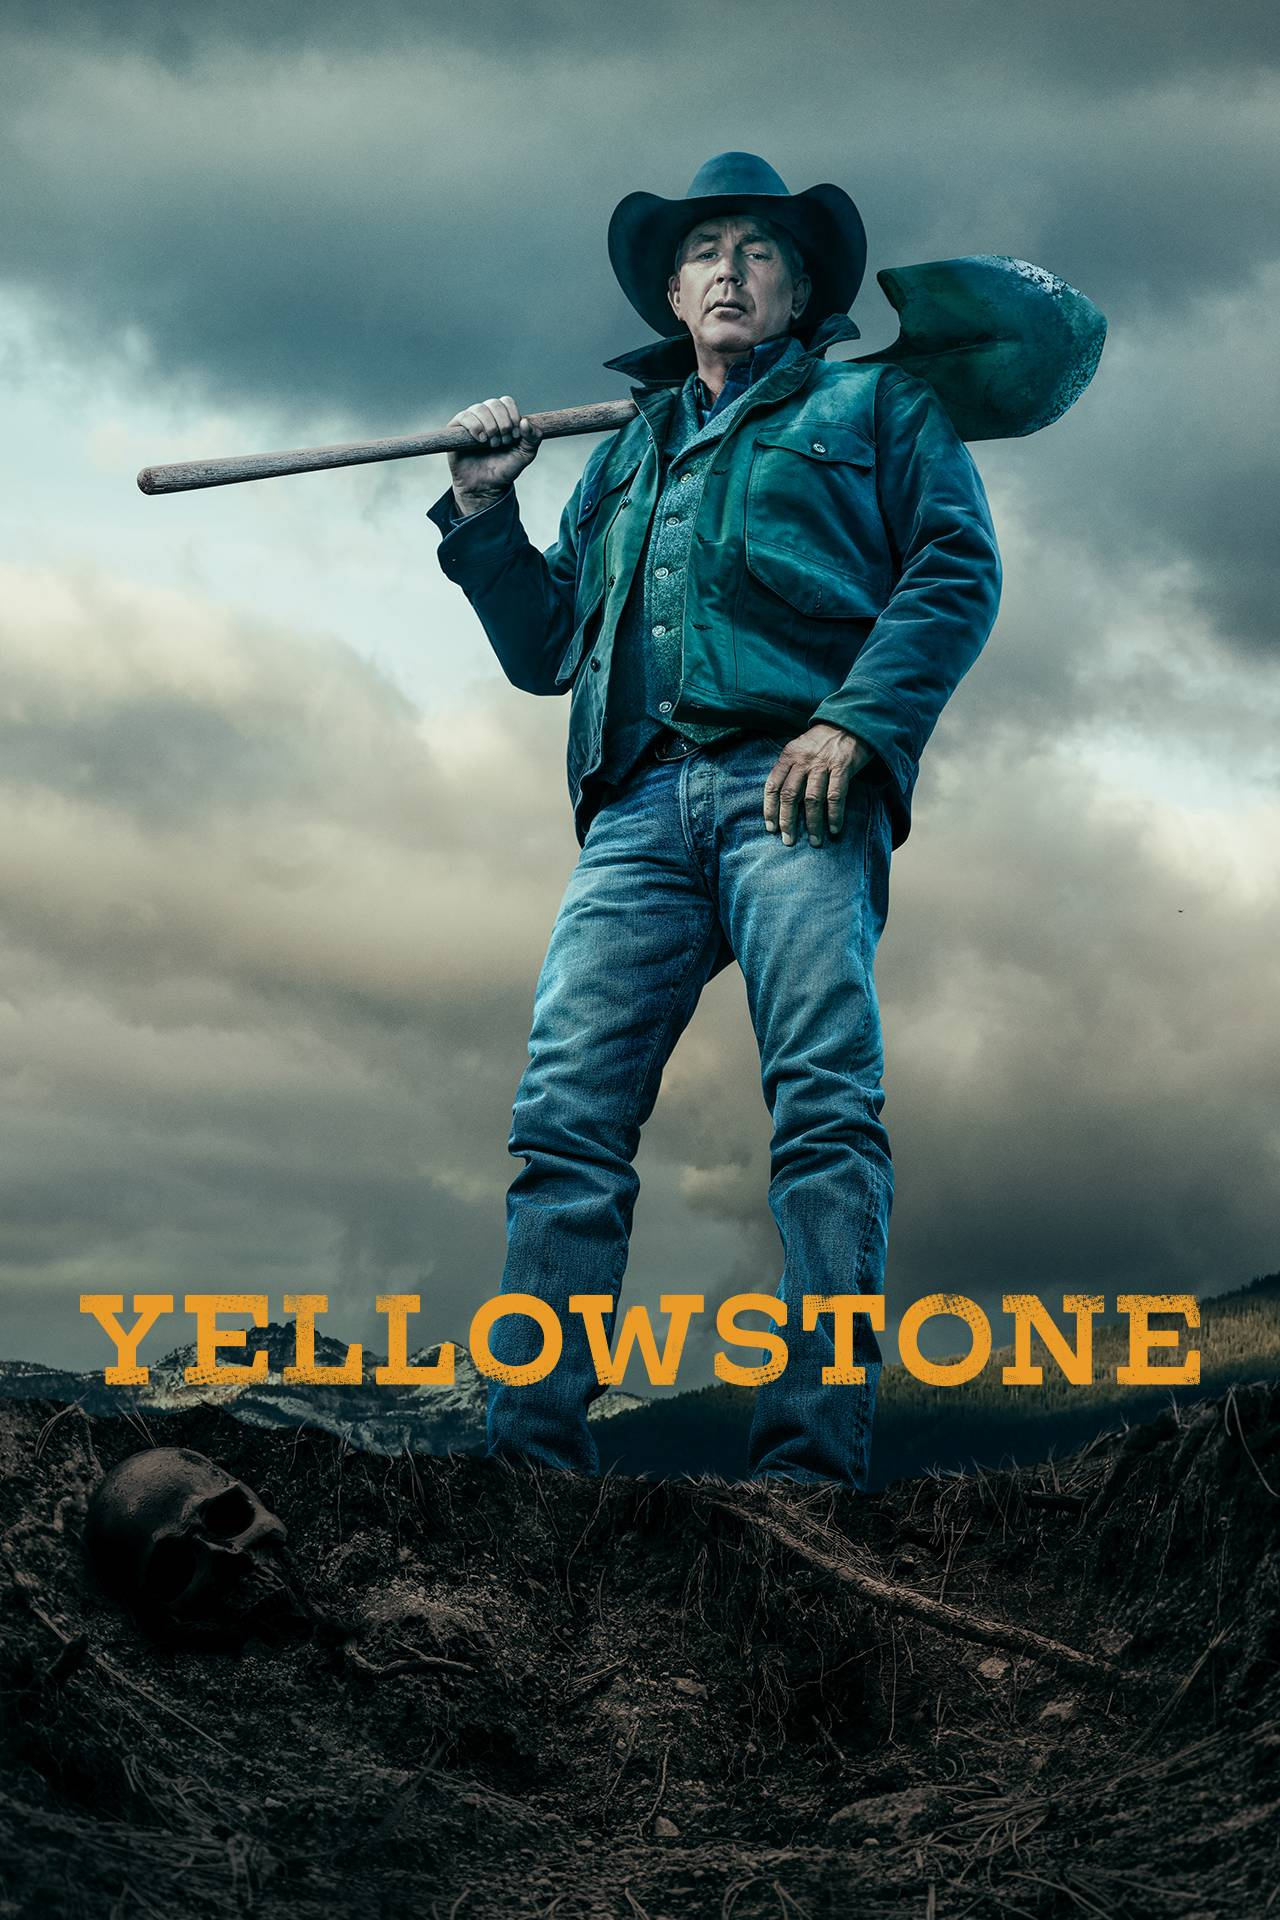 Yellowstone | 2: Yellowstone Episodes, News, Videos and Cast | Paramount Network